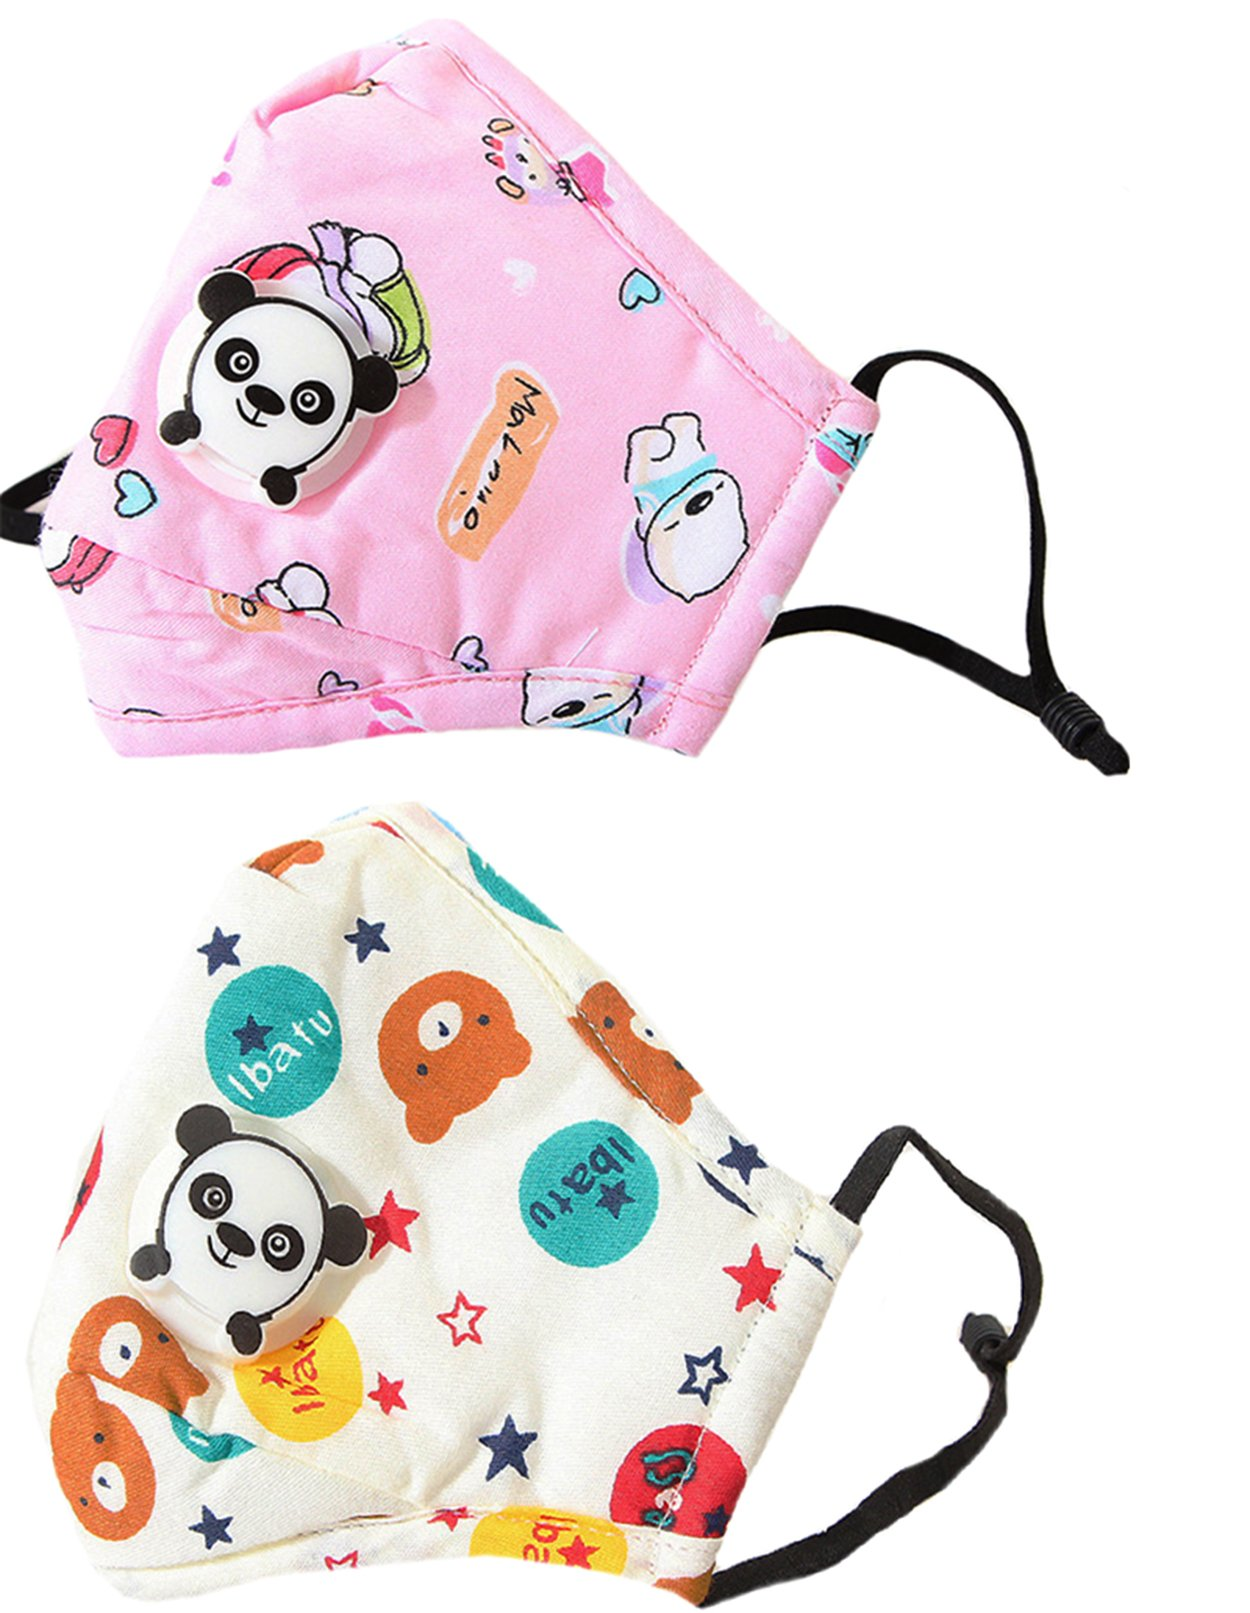 ZANLICE 2-Pack Kids PM2.5 Anti-Pollution Washable Mouth Masks with Filter(2masks+8filter